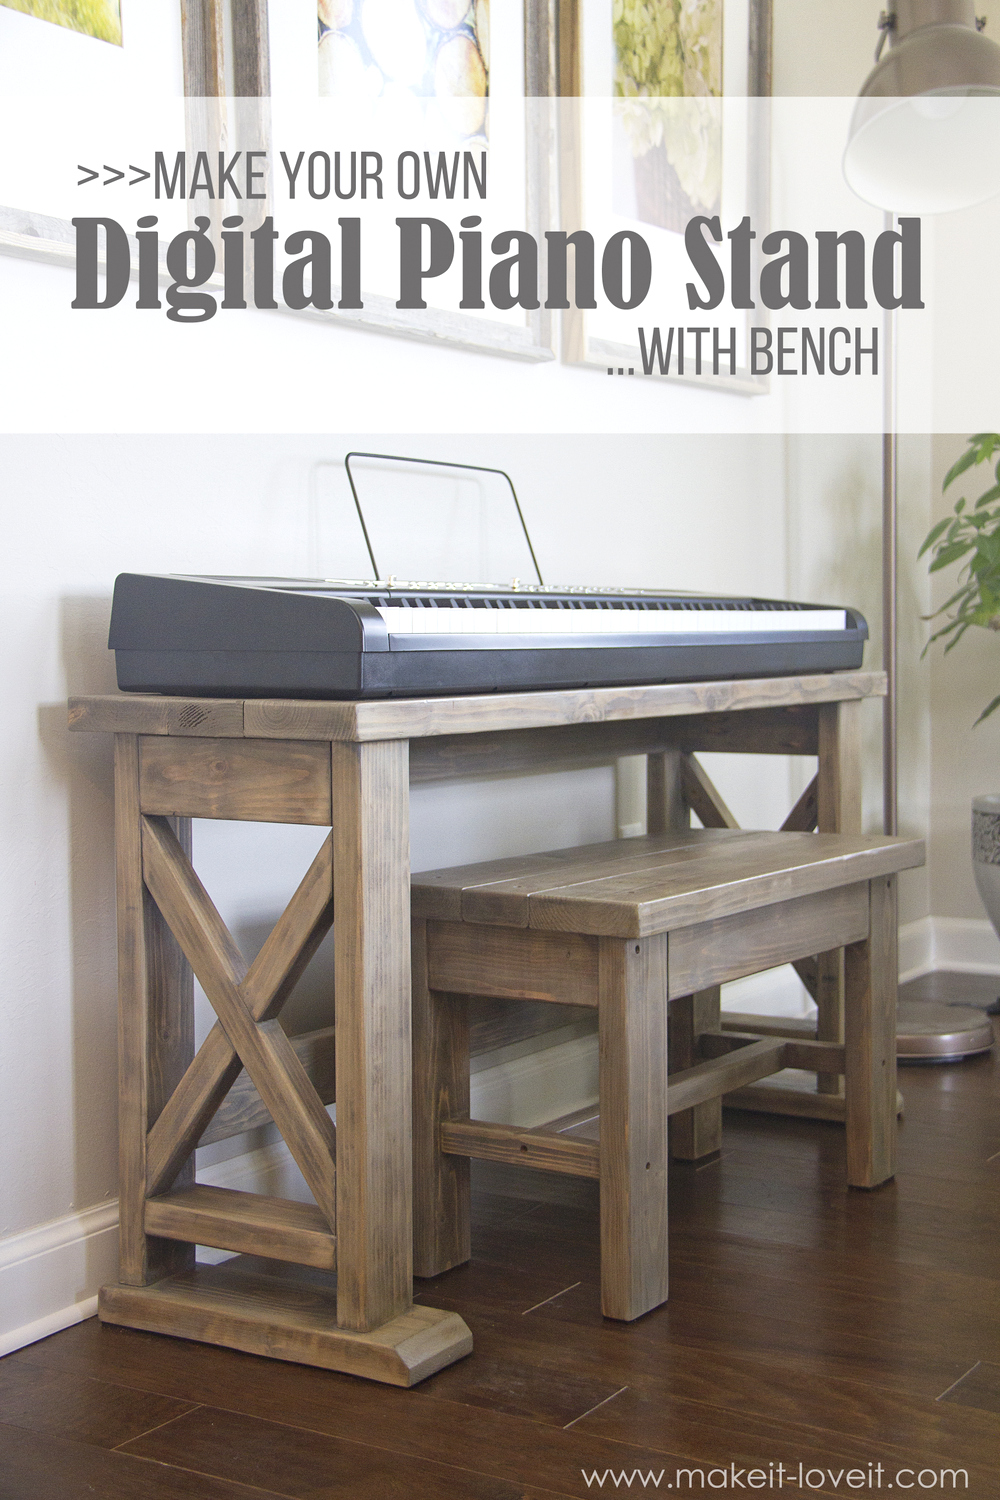 DIY Digital Piano Stand Plus Bench a 25 Project